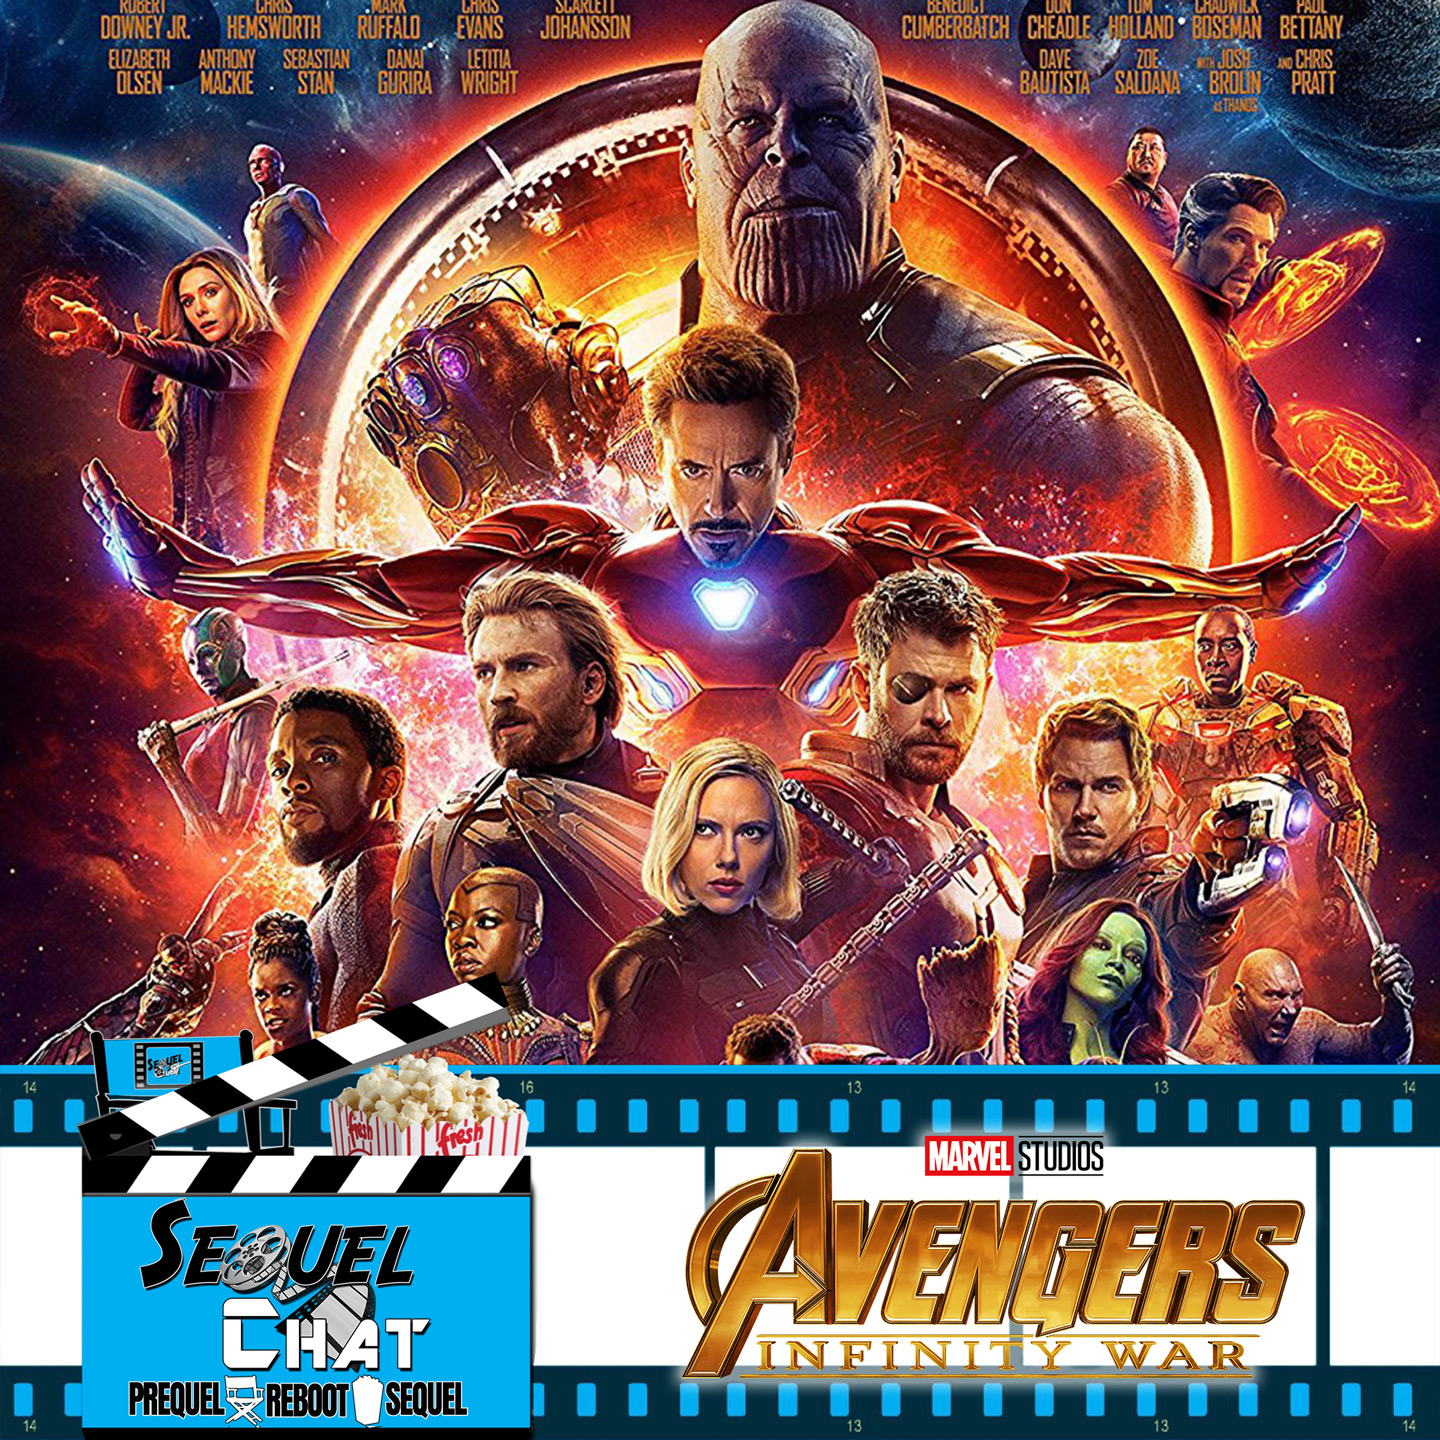 EP74 | SequelChat Review of Avengers: Infinity War | SequelQuest